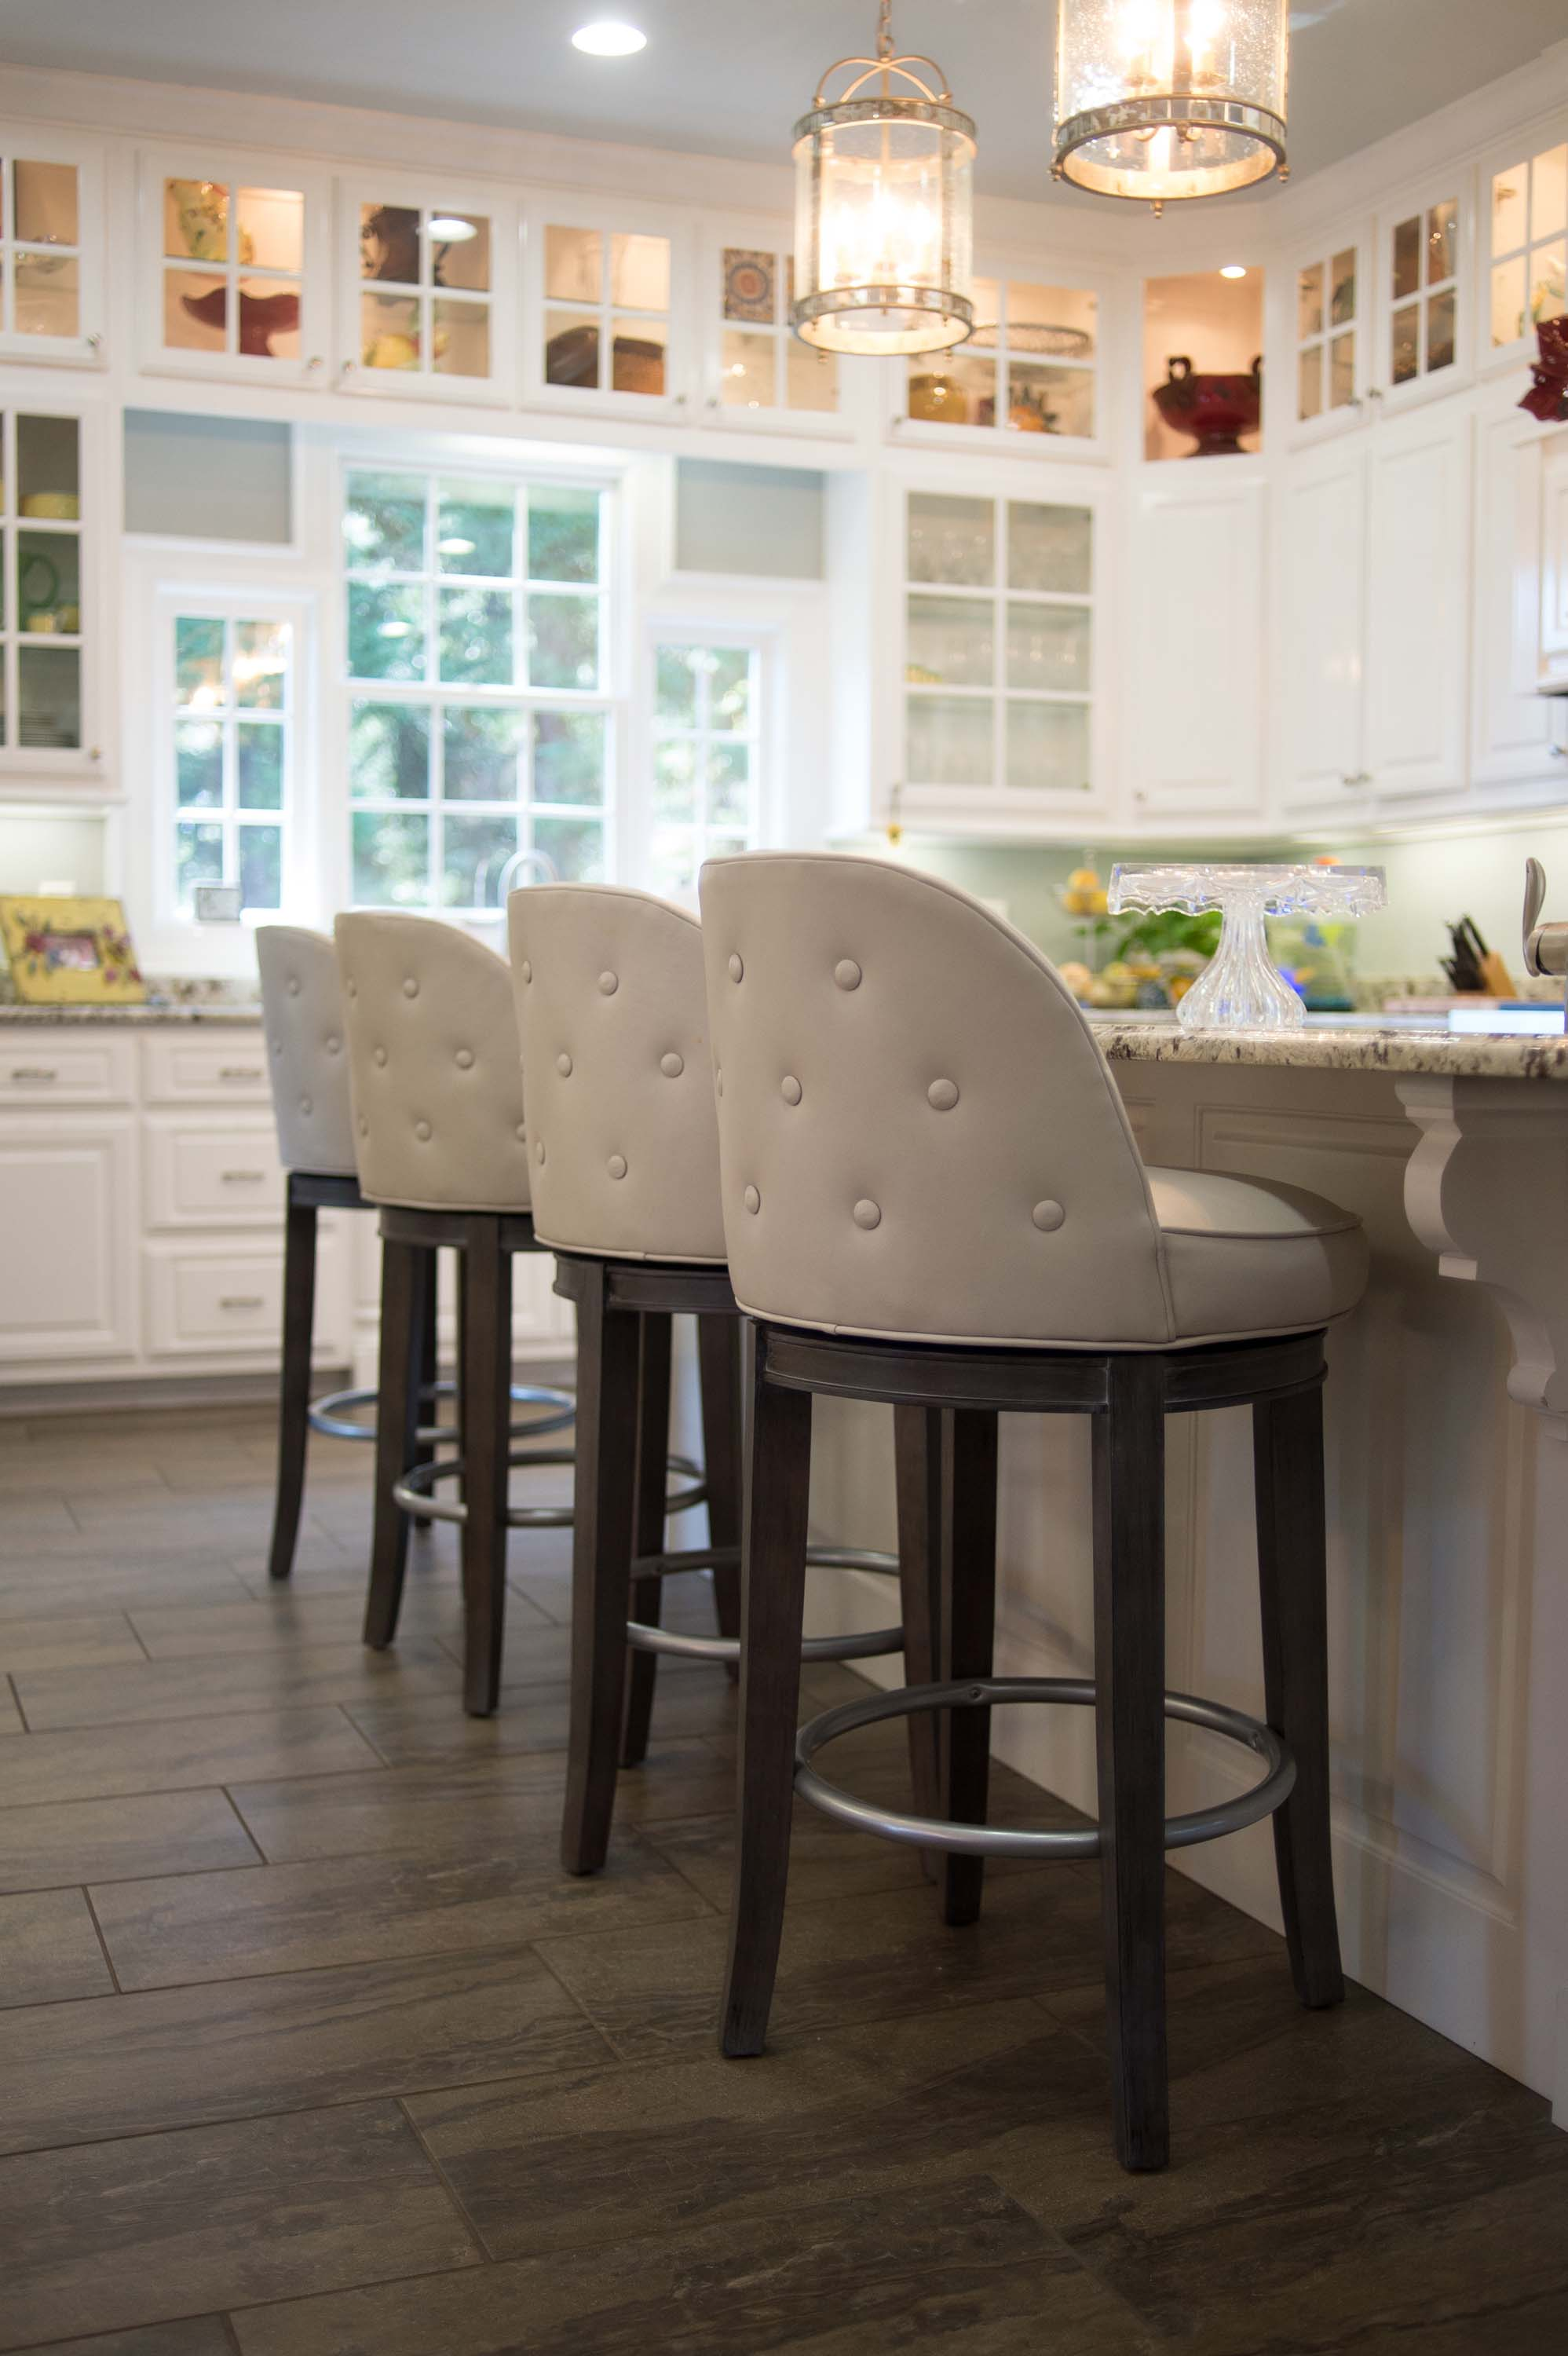 Custom Barstool with White Cabinets